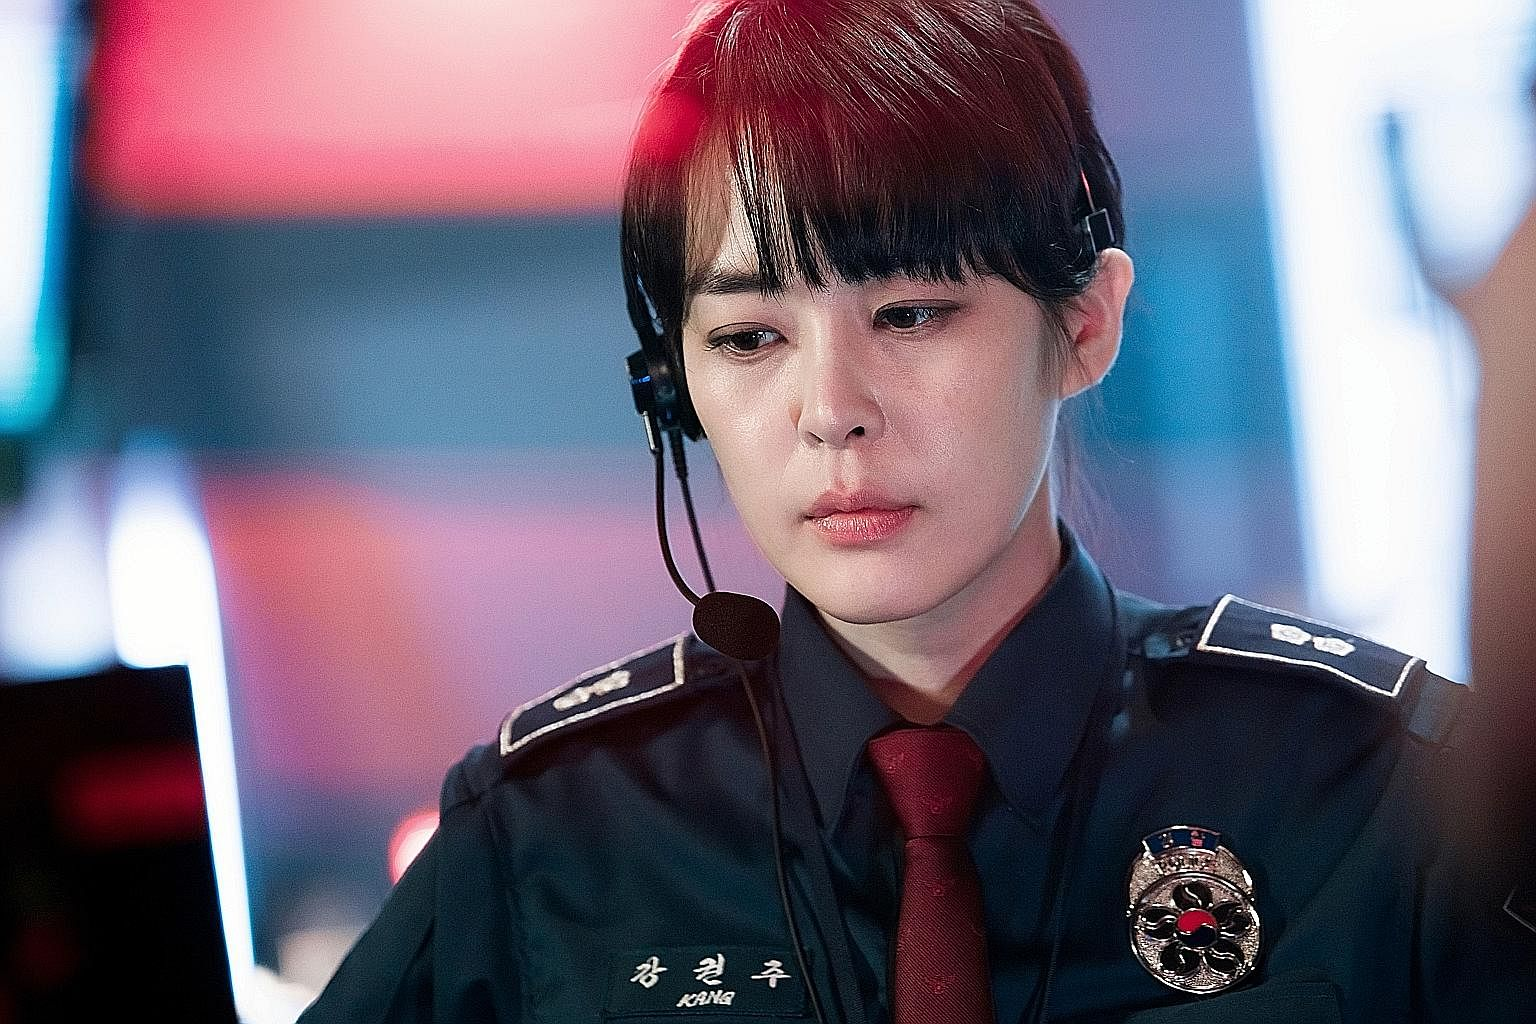 Lee Ha Na plays a rookie policewoman in Voice.